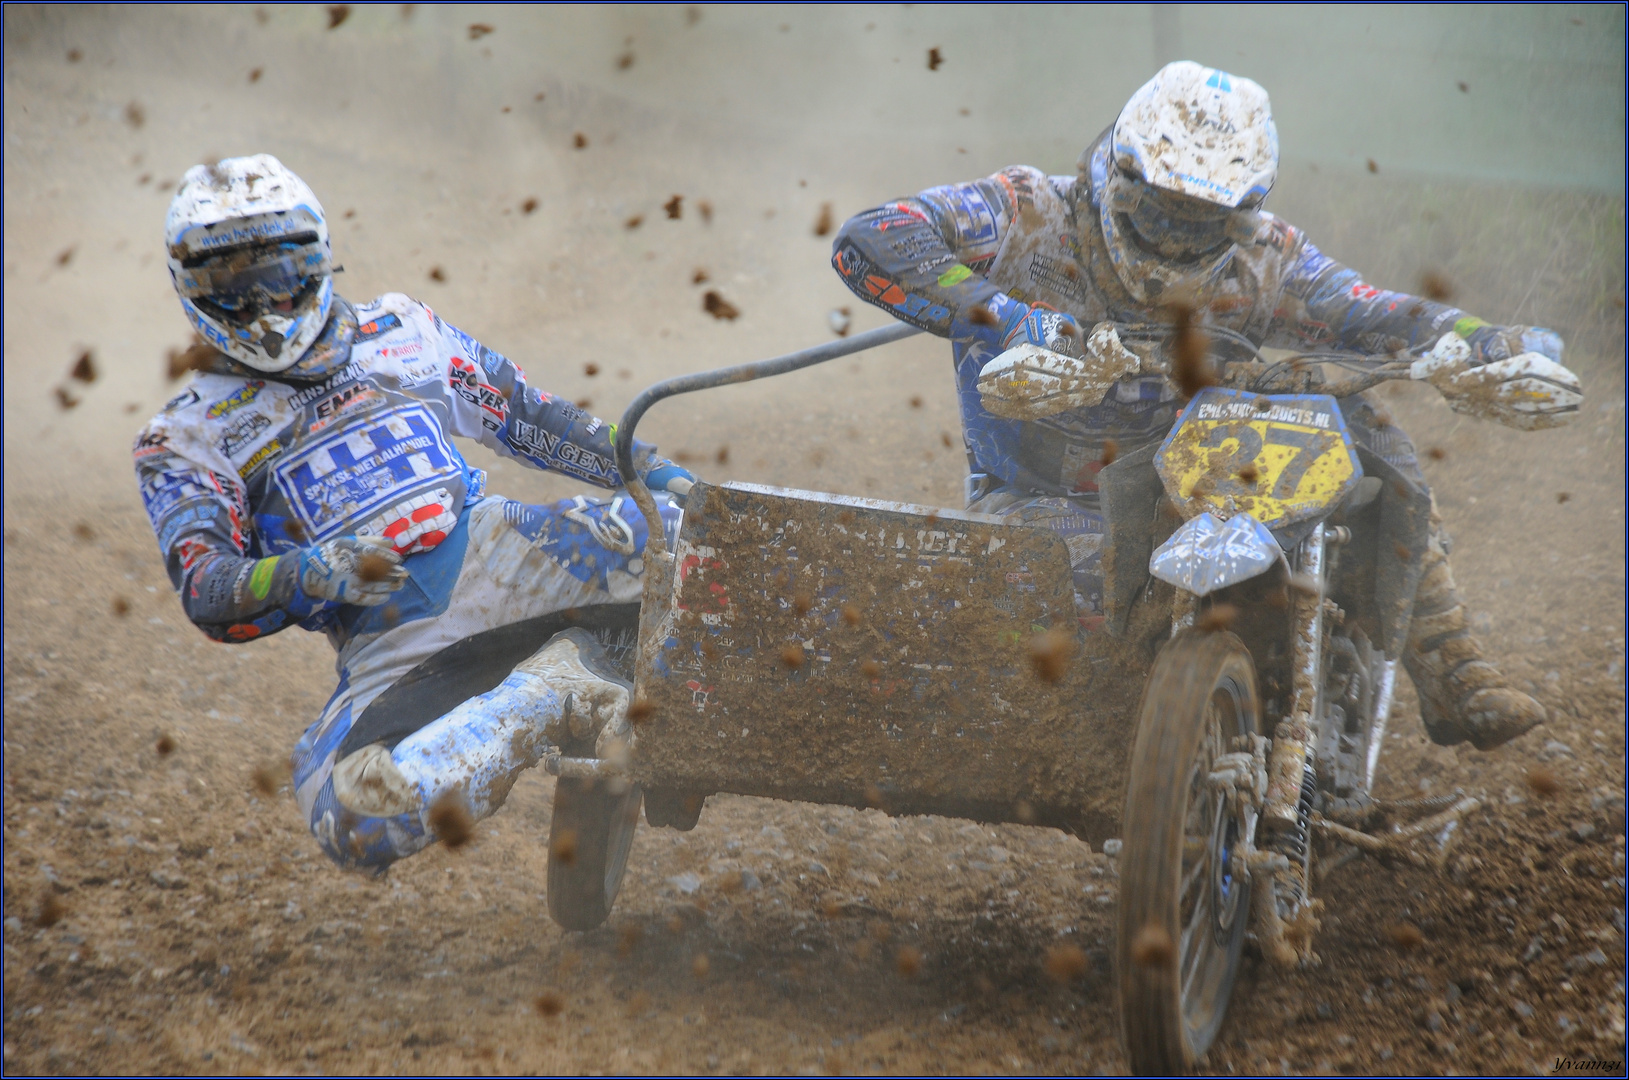 Championnat du monde de side-car cross à Plomion (2010)